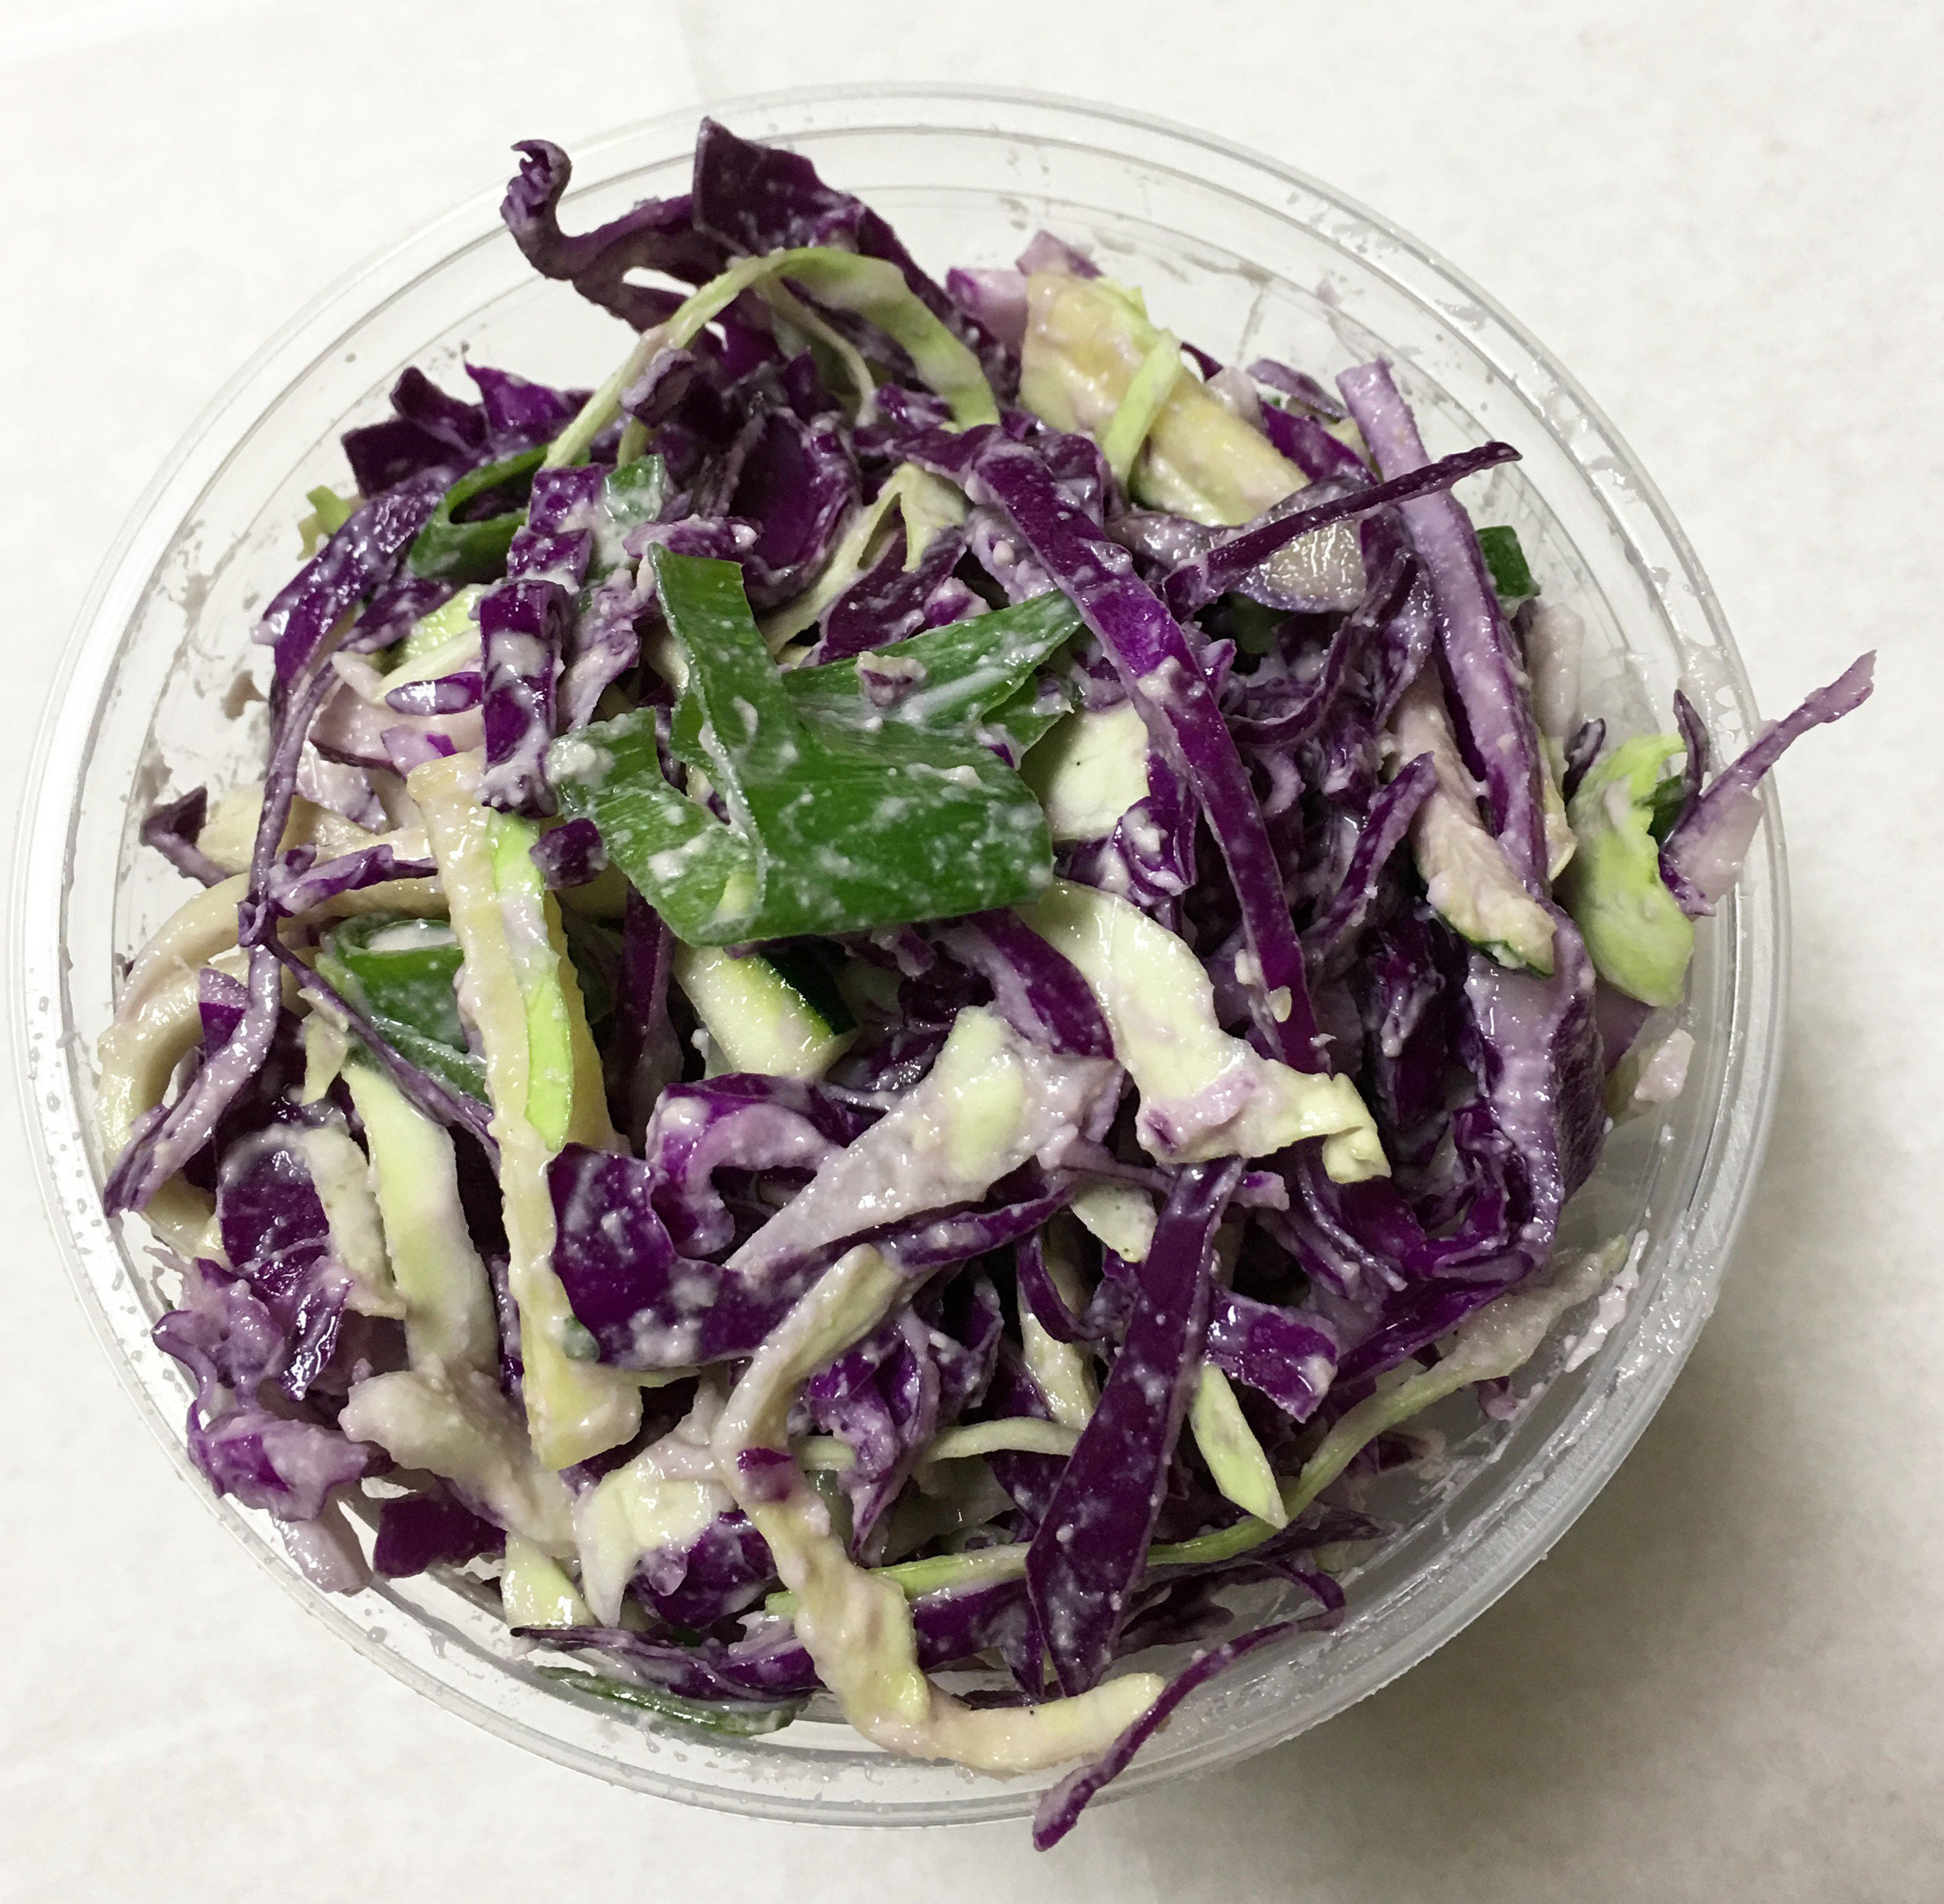 Red and green cabbage coleslaw with zucchini and a mustard sesame seed dressing.